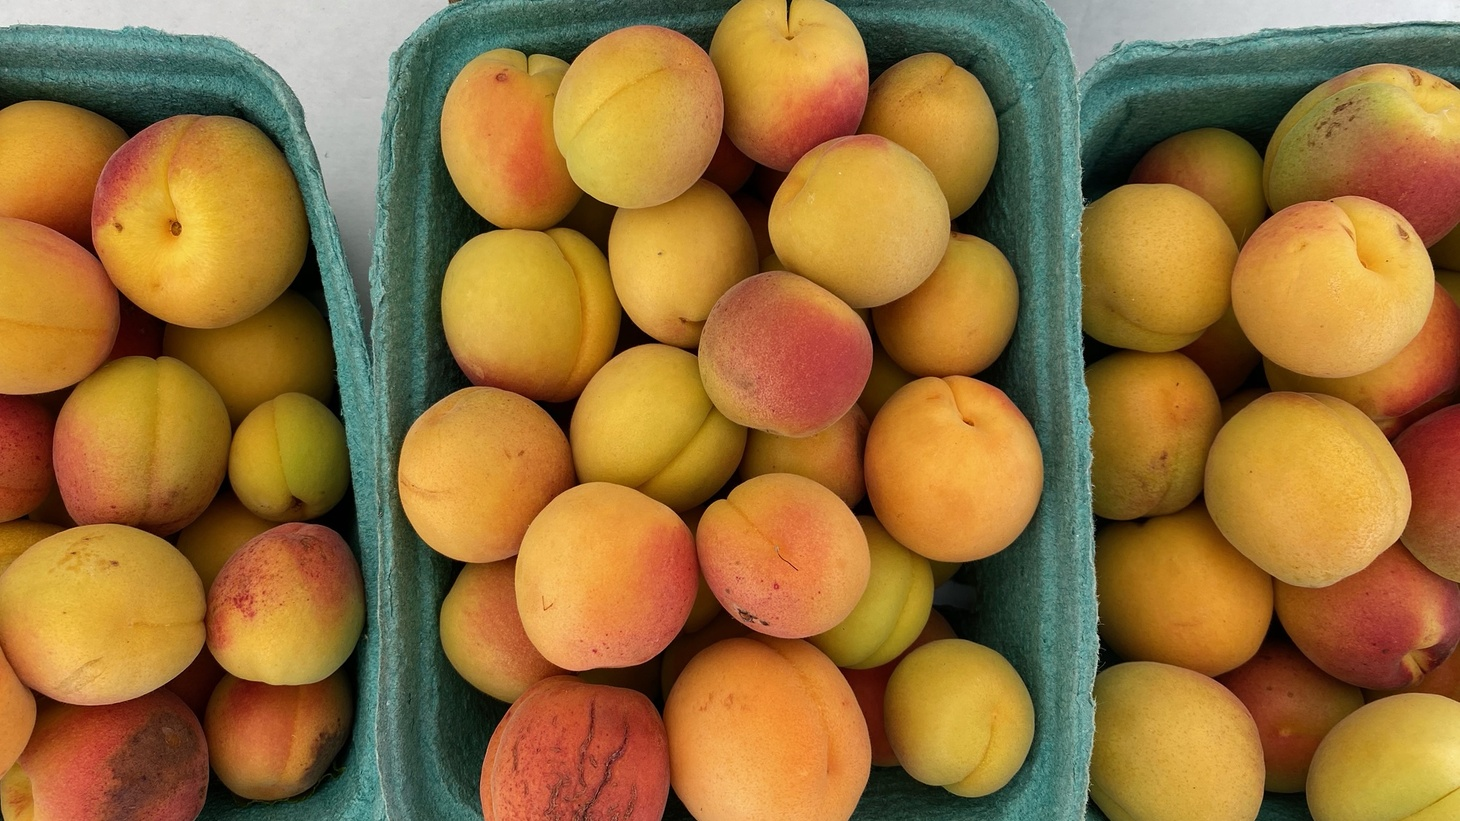 Blenheim apricots have a fleeting season and can be found for a mere four to five weeks at farmer's markets.